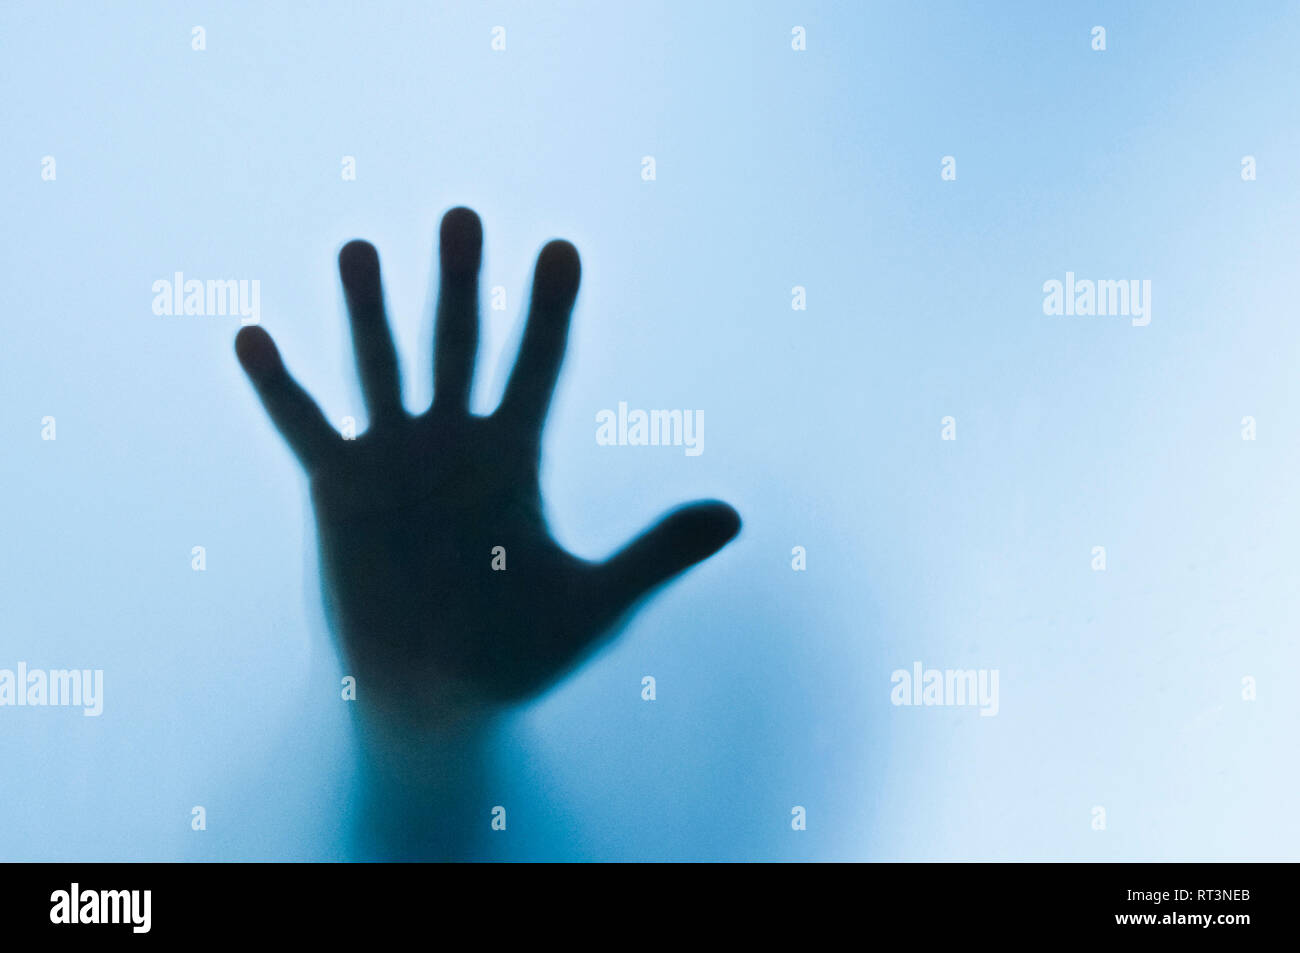 silhouette of the hand of a person behind a glass - image for book cover - Stock Image